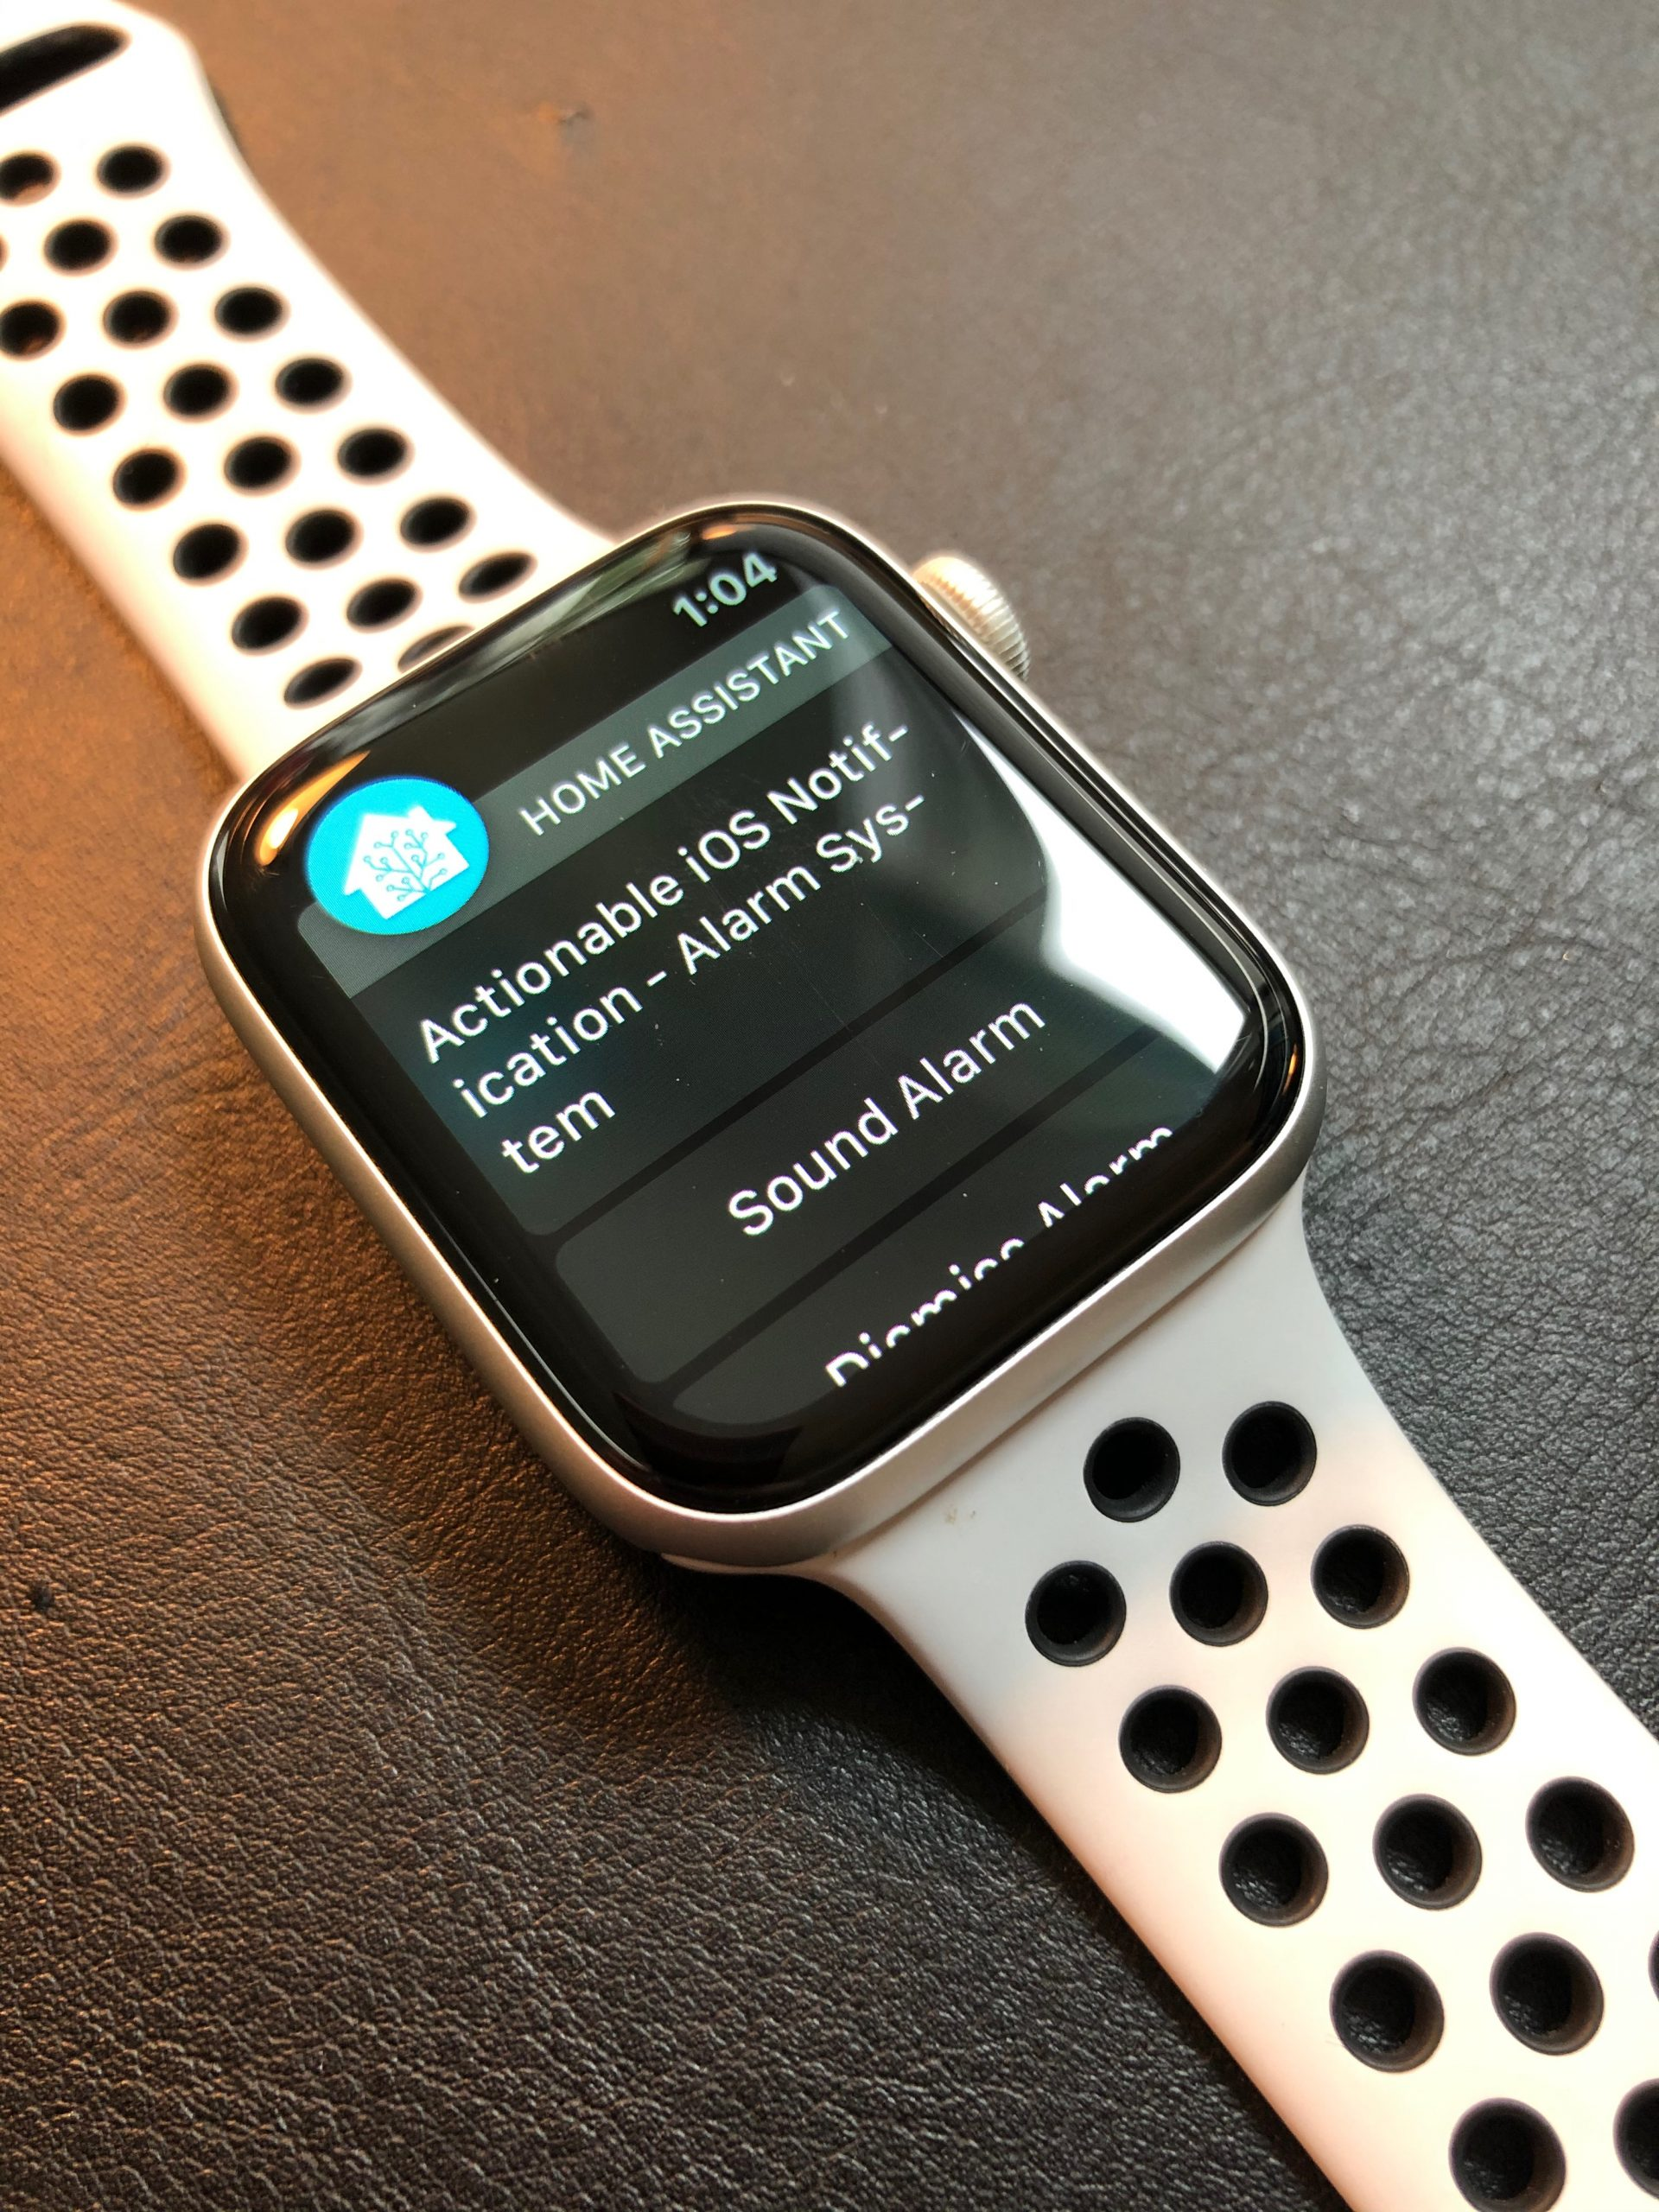 iOS Actionable Notification received on Apple Watch